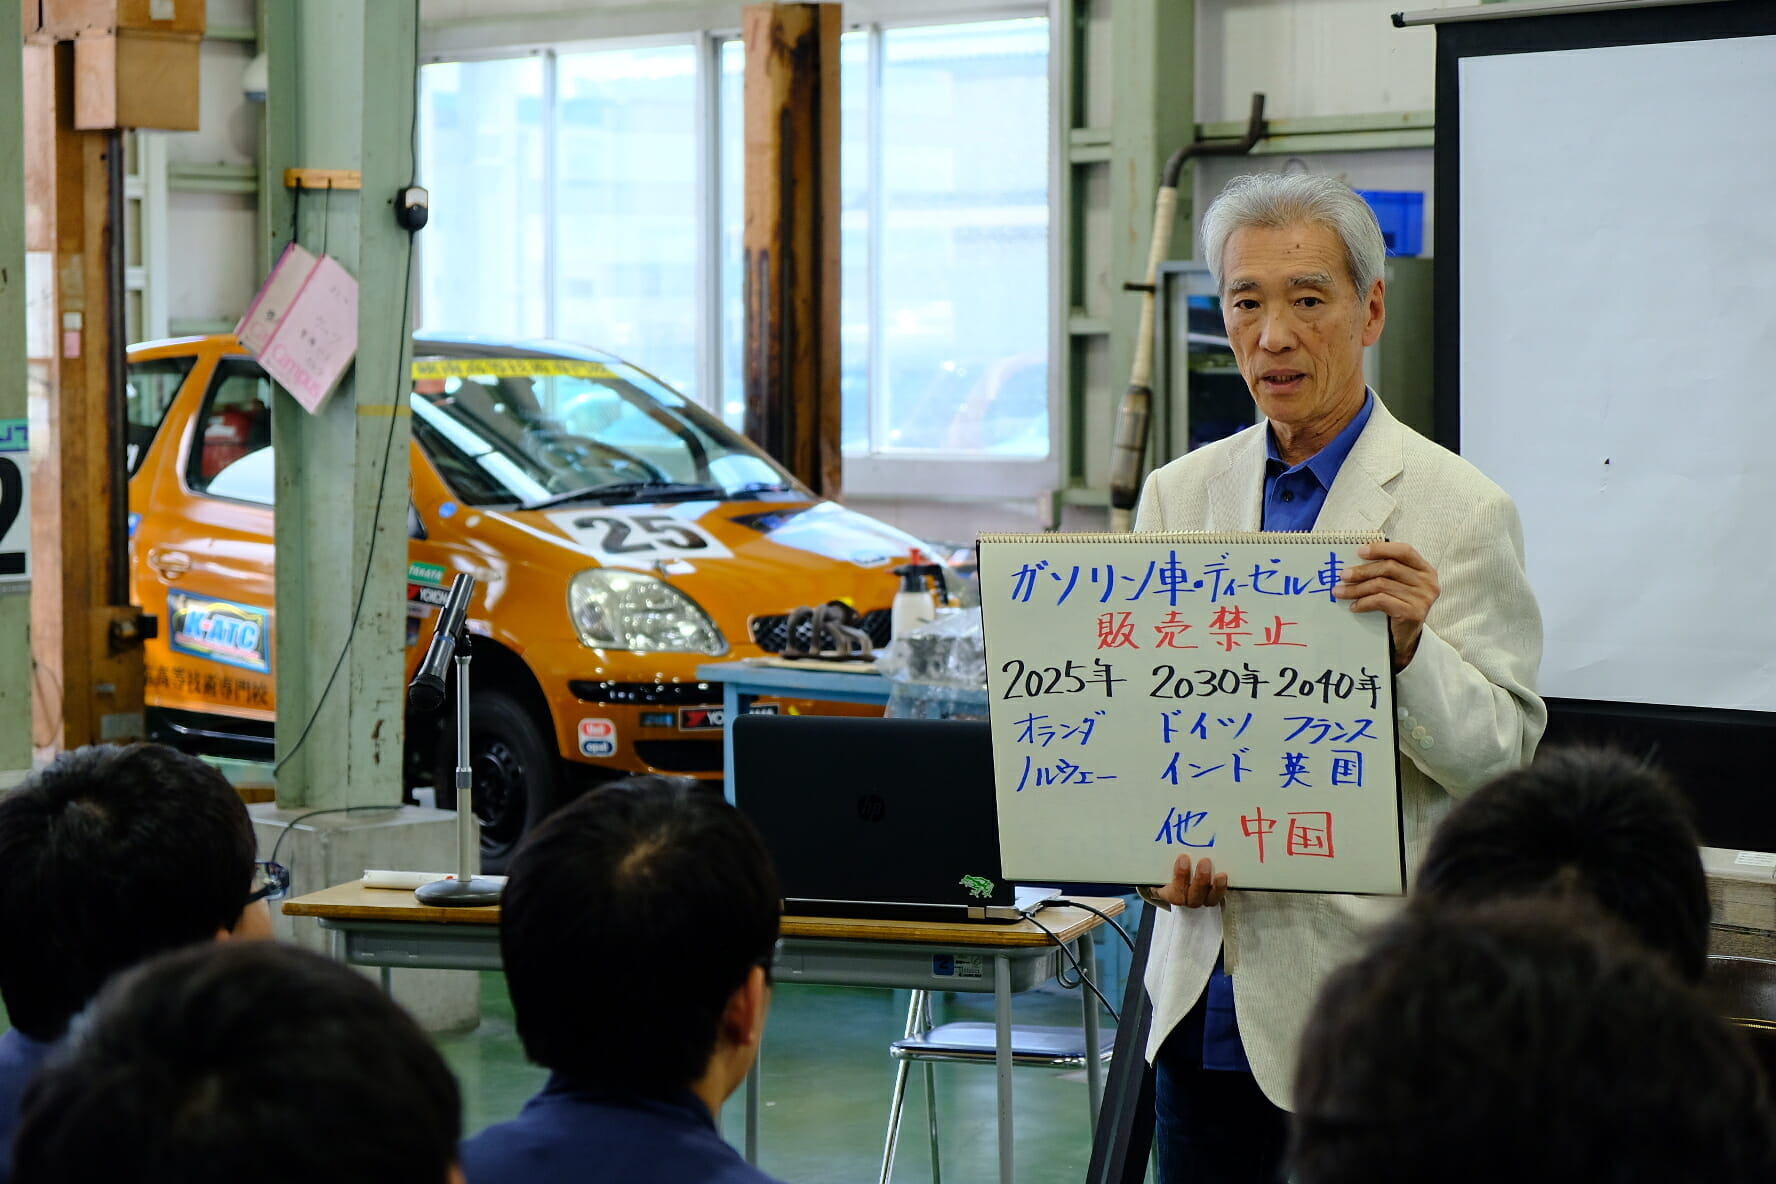 Alan is the most famous Tesla evangelist in Japan. His lecture was on current world trends and Elon Musk's philosophies.